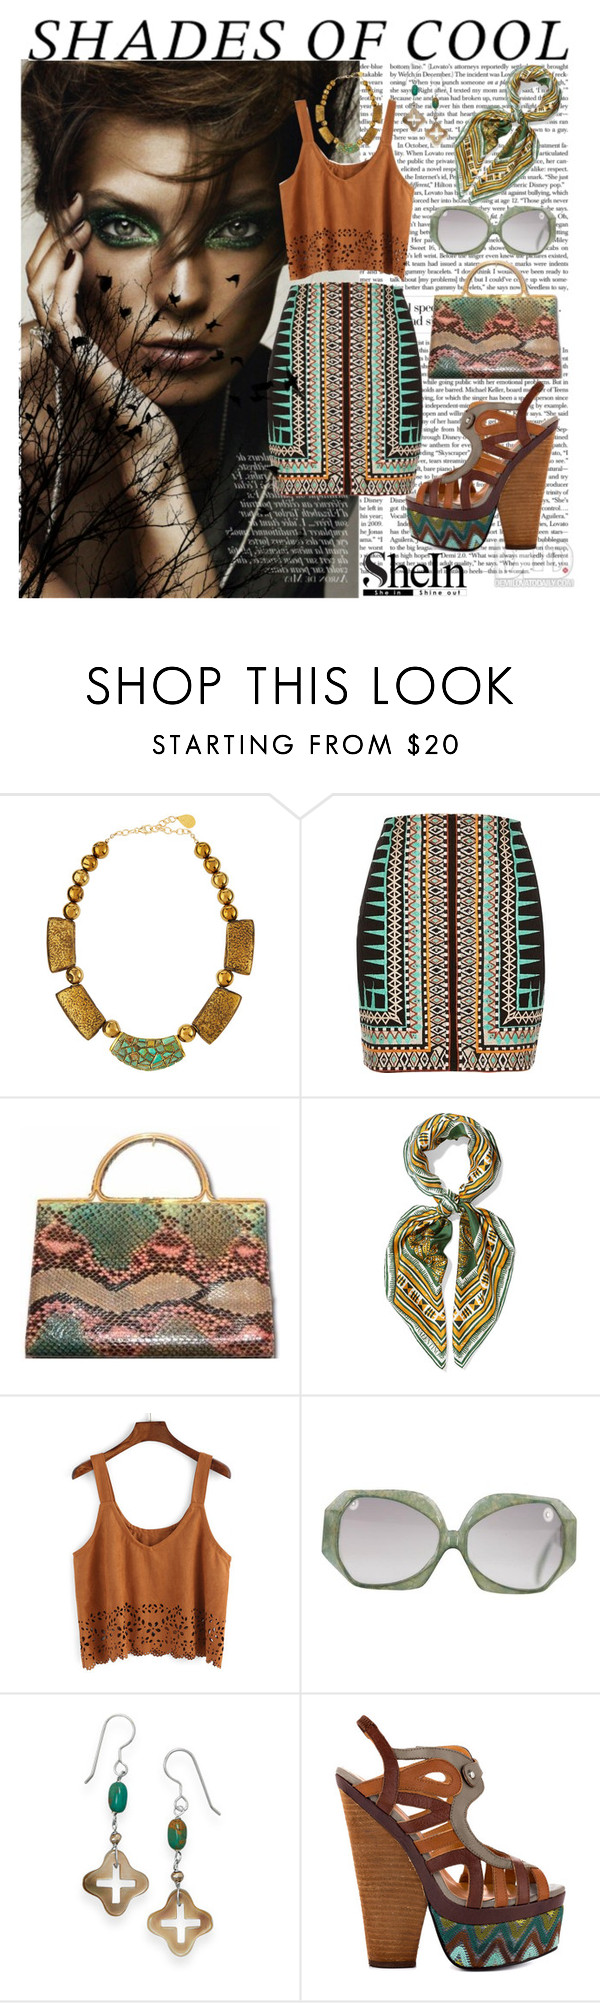 """""""Shades of Cool"""" by eliza-81 ❤ liked on Polyvore featuring Devon Leigh, River Island, Judith Leiber, Valentino, Christian Dior, BillyTheTree and N.Y.L.A."""